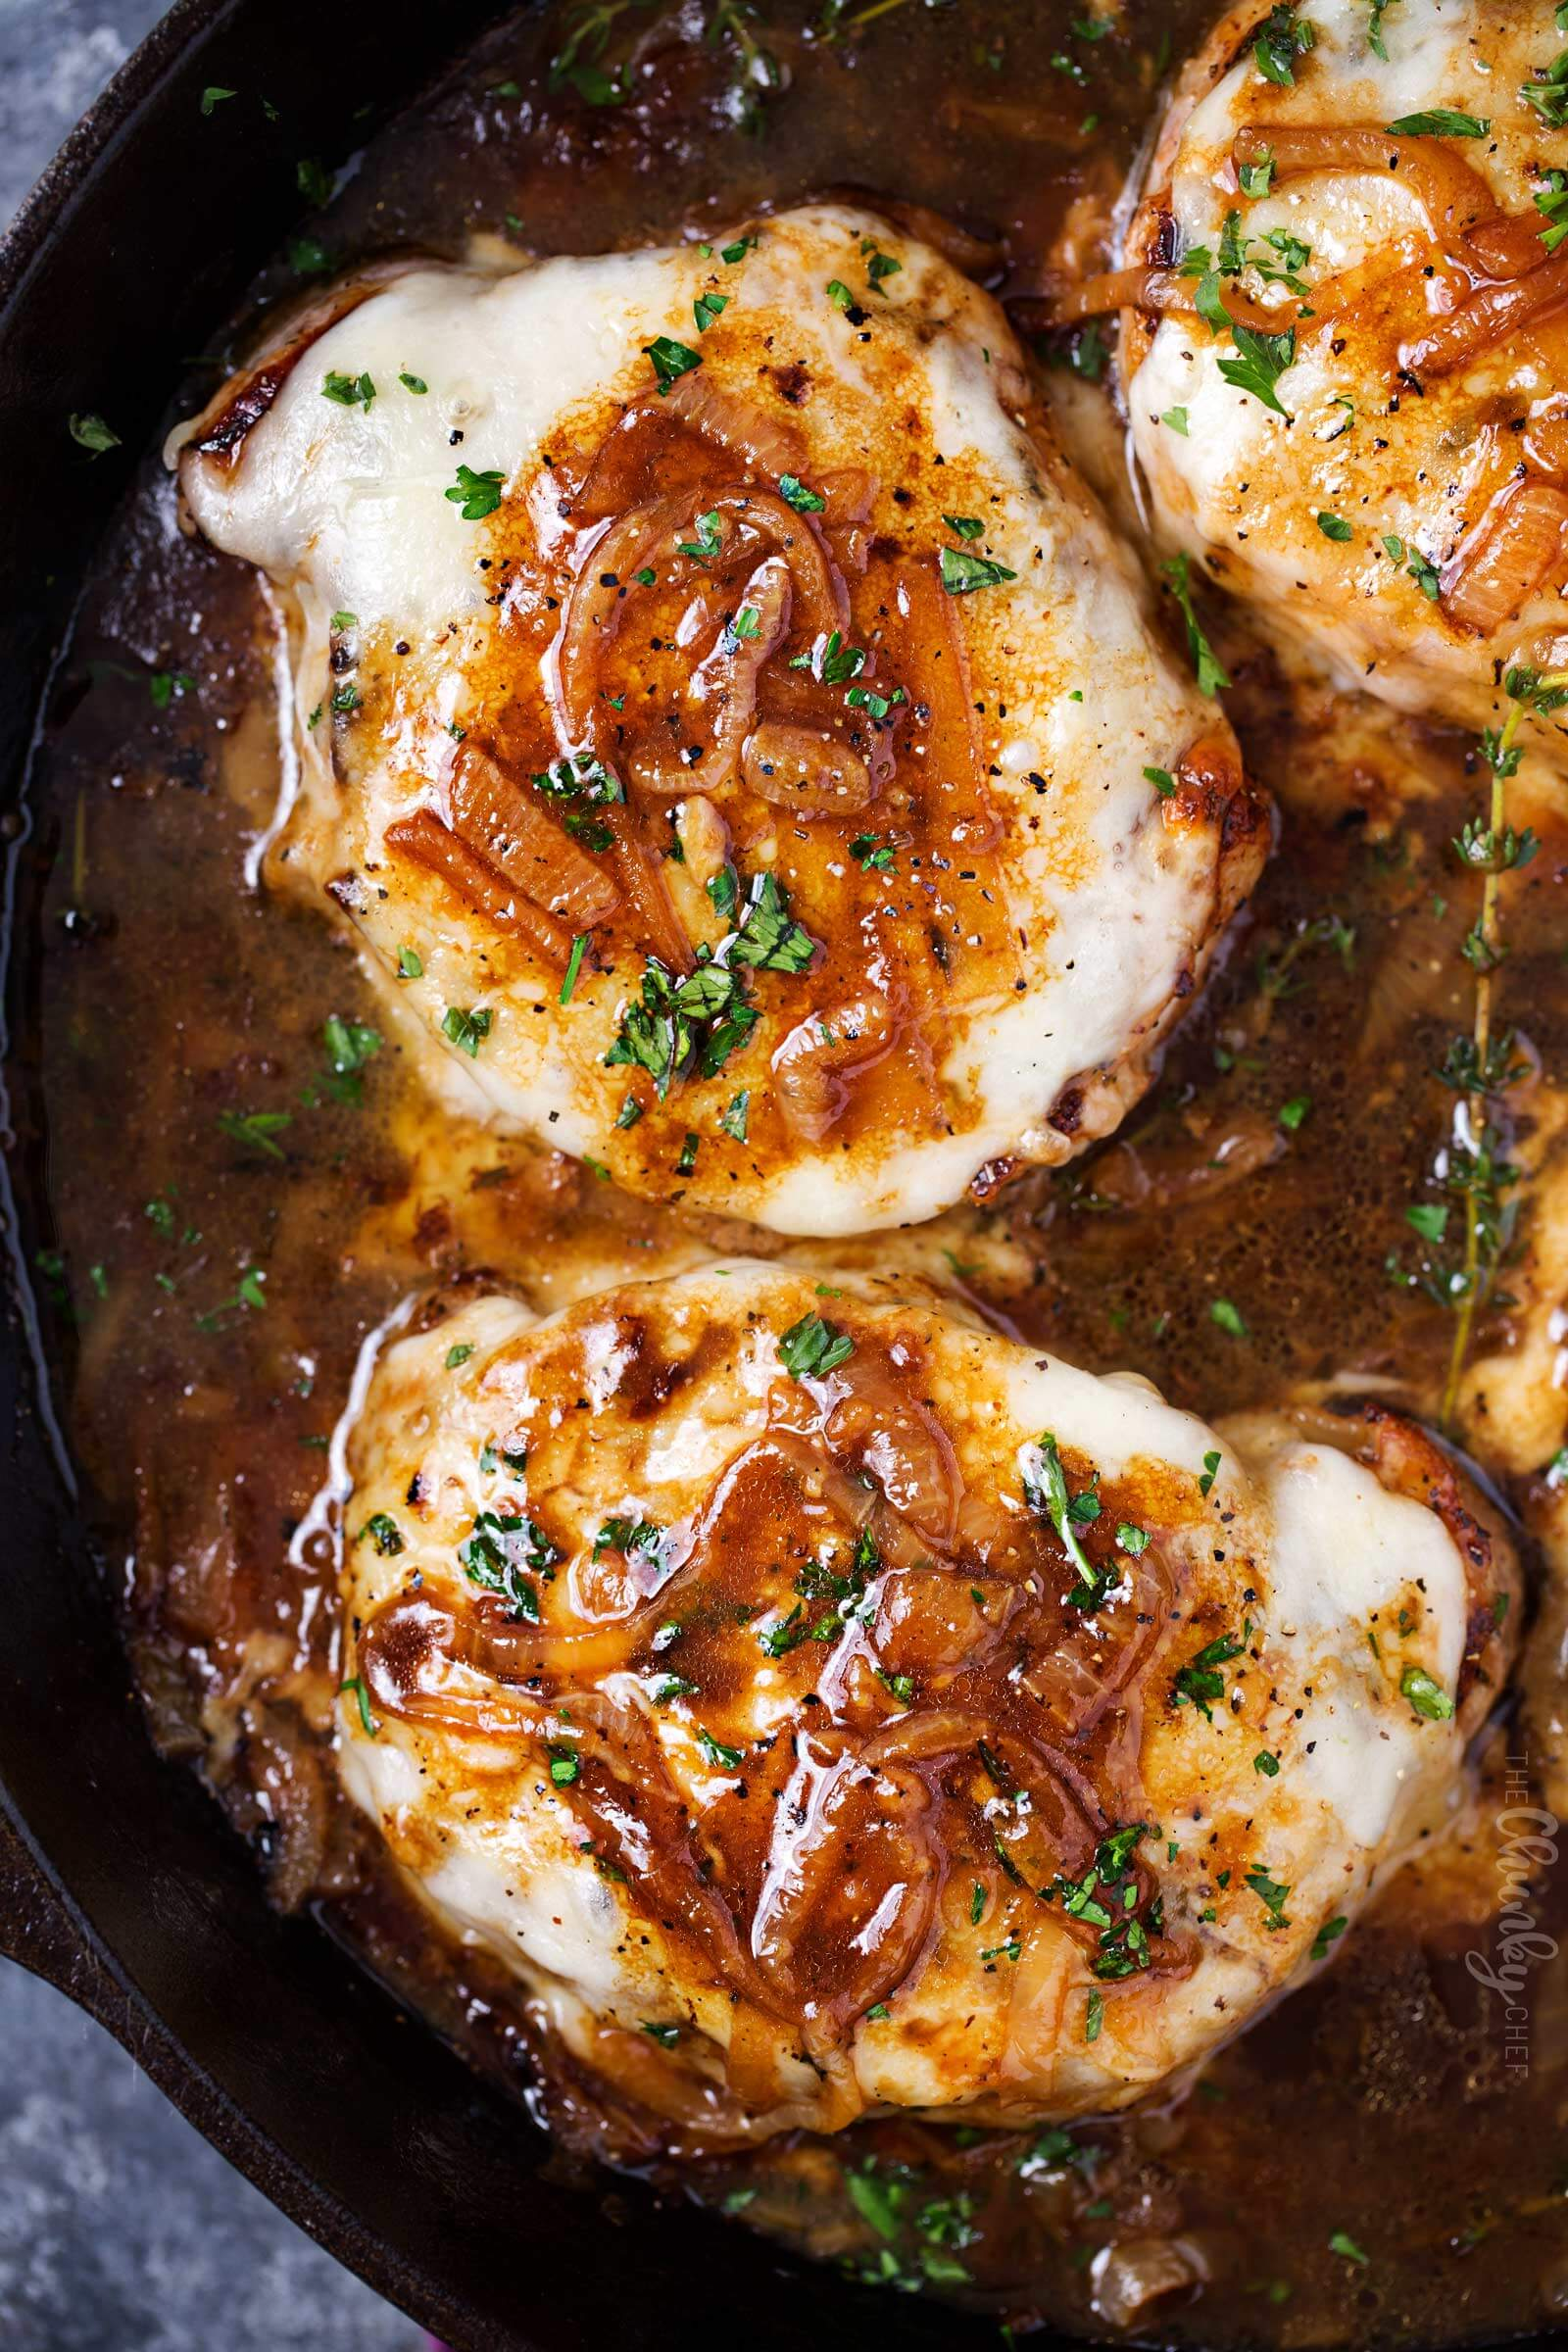 10. French Onion Smothered Pork Chops